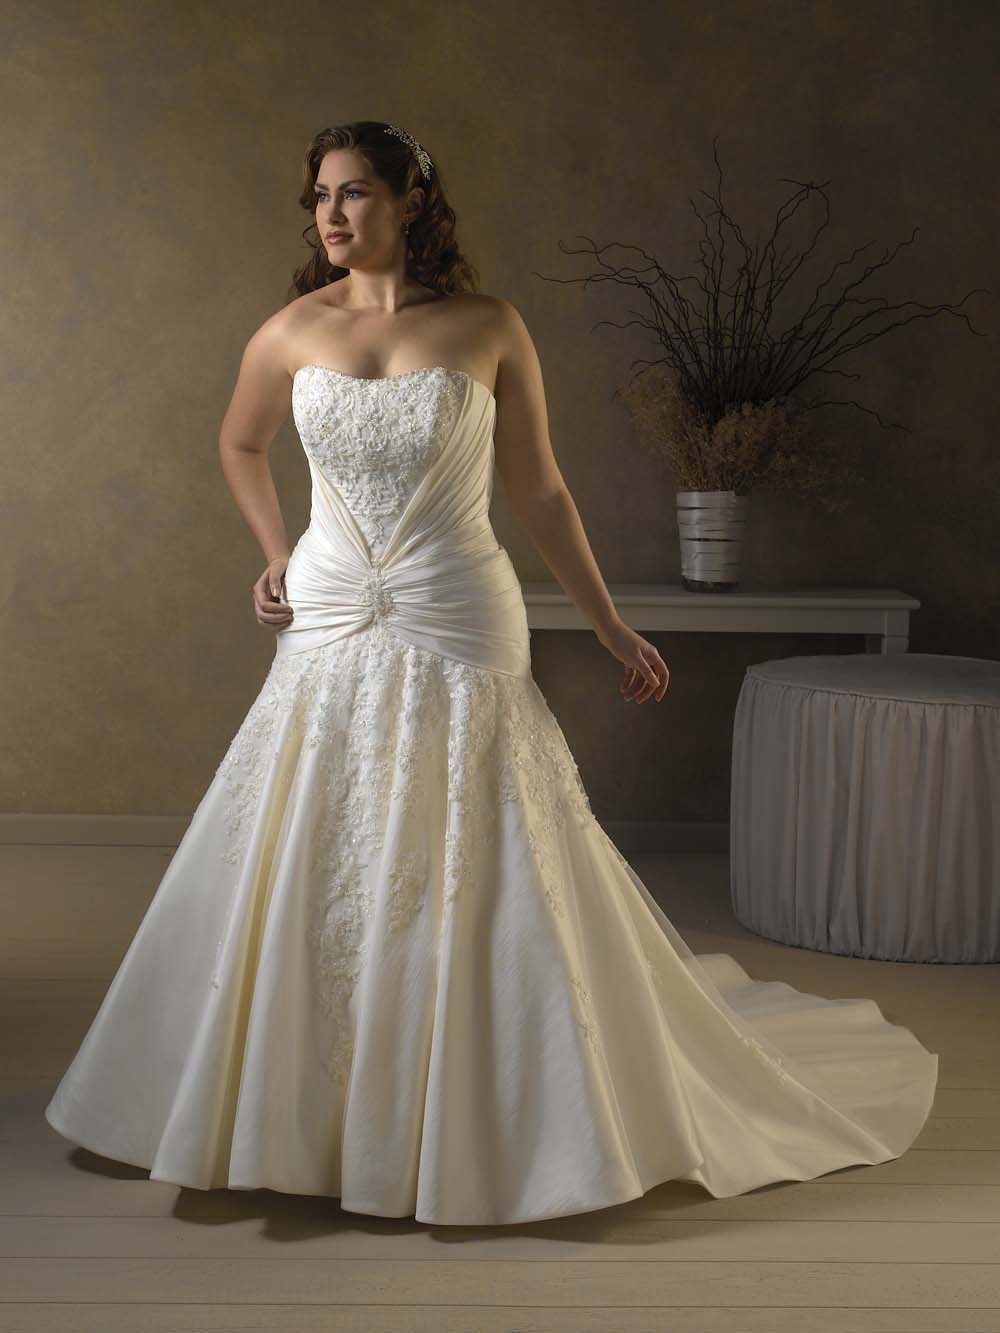 Mermaid plus size wedding dresses  We can never forget about our curvy brides Featuring a Masako